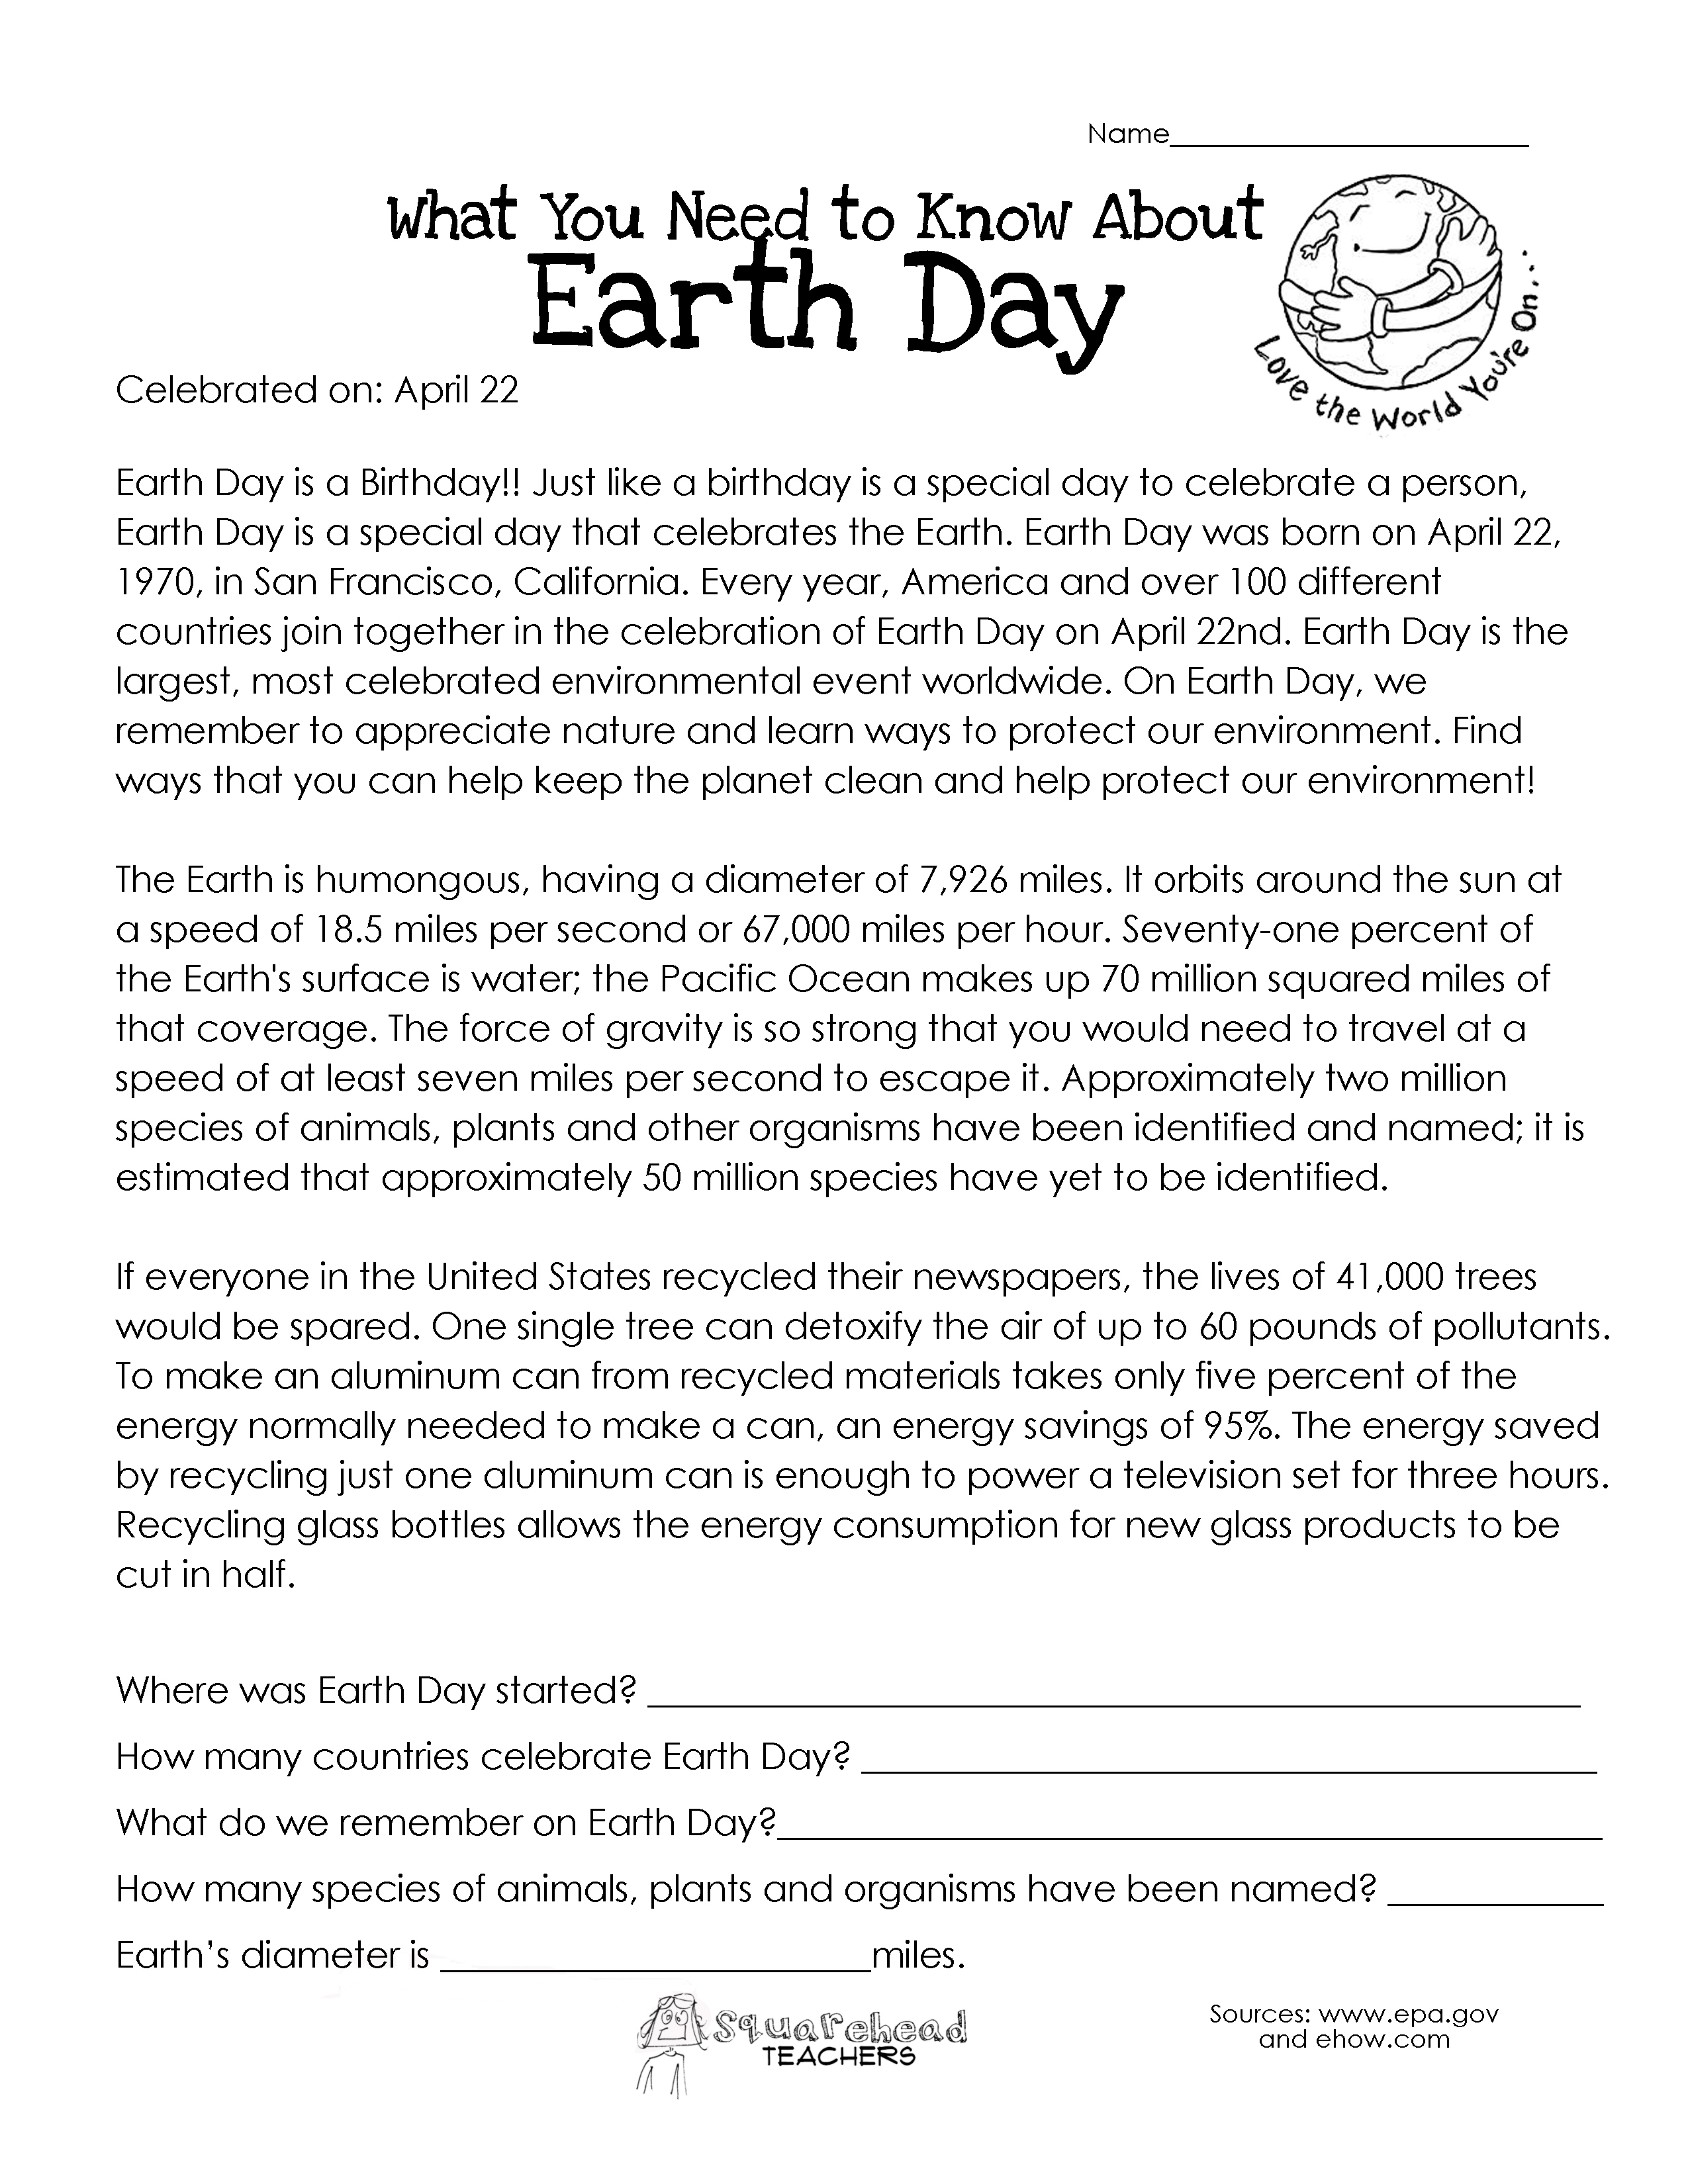 Structure Of The Earth For Kids Worksheets